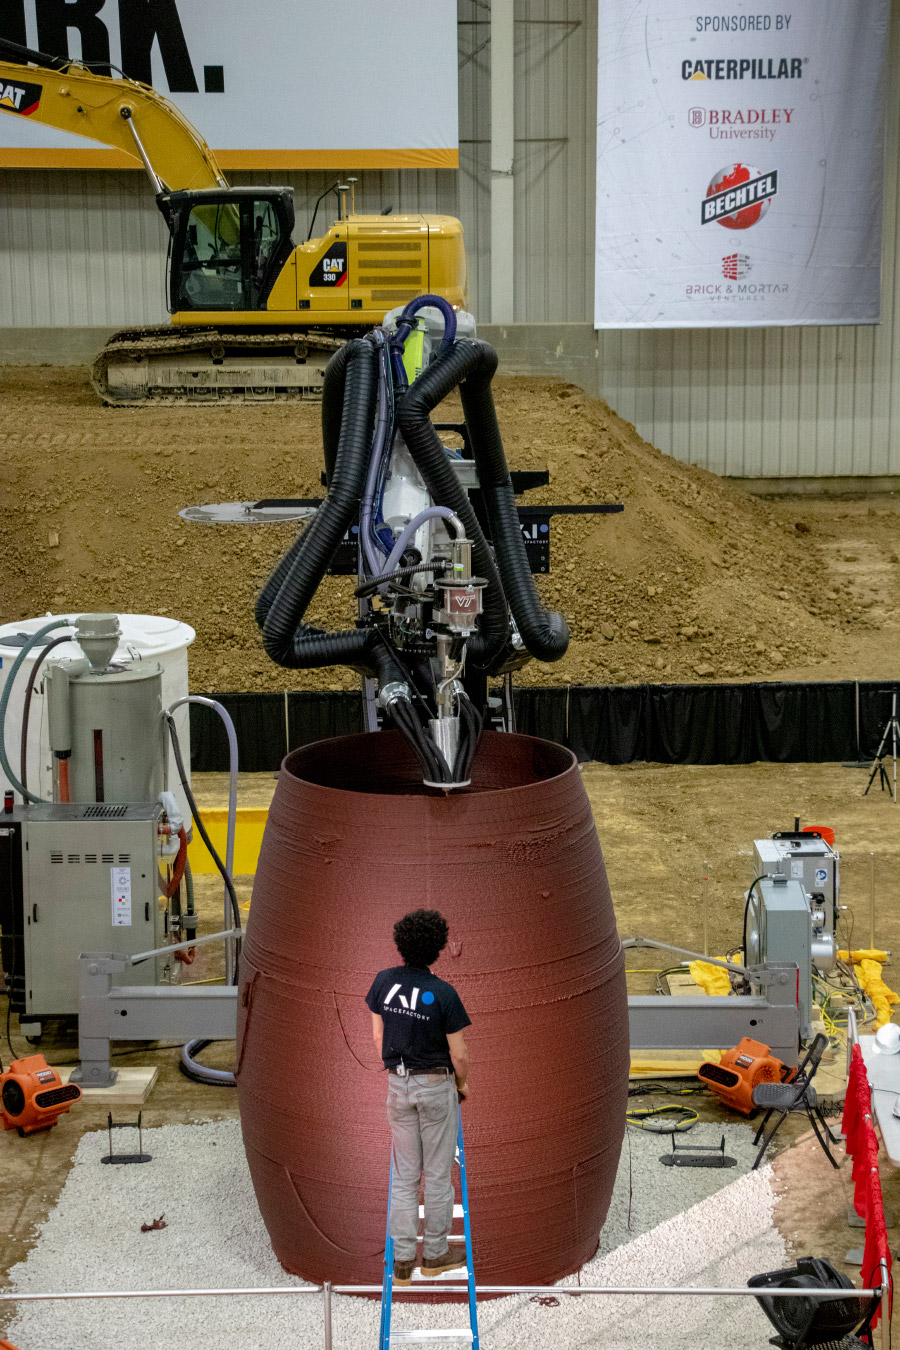 Photo of a person standing in front of a cylinder that's being 3D printed, a model for space habitation